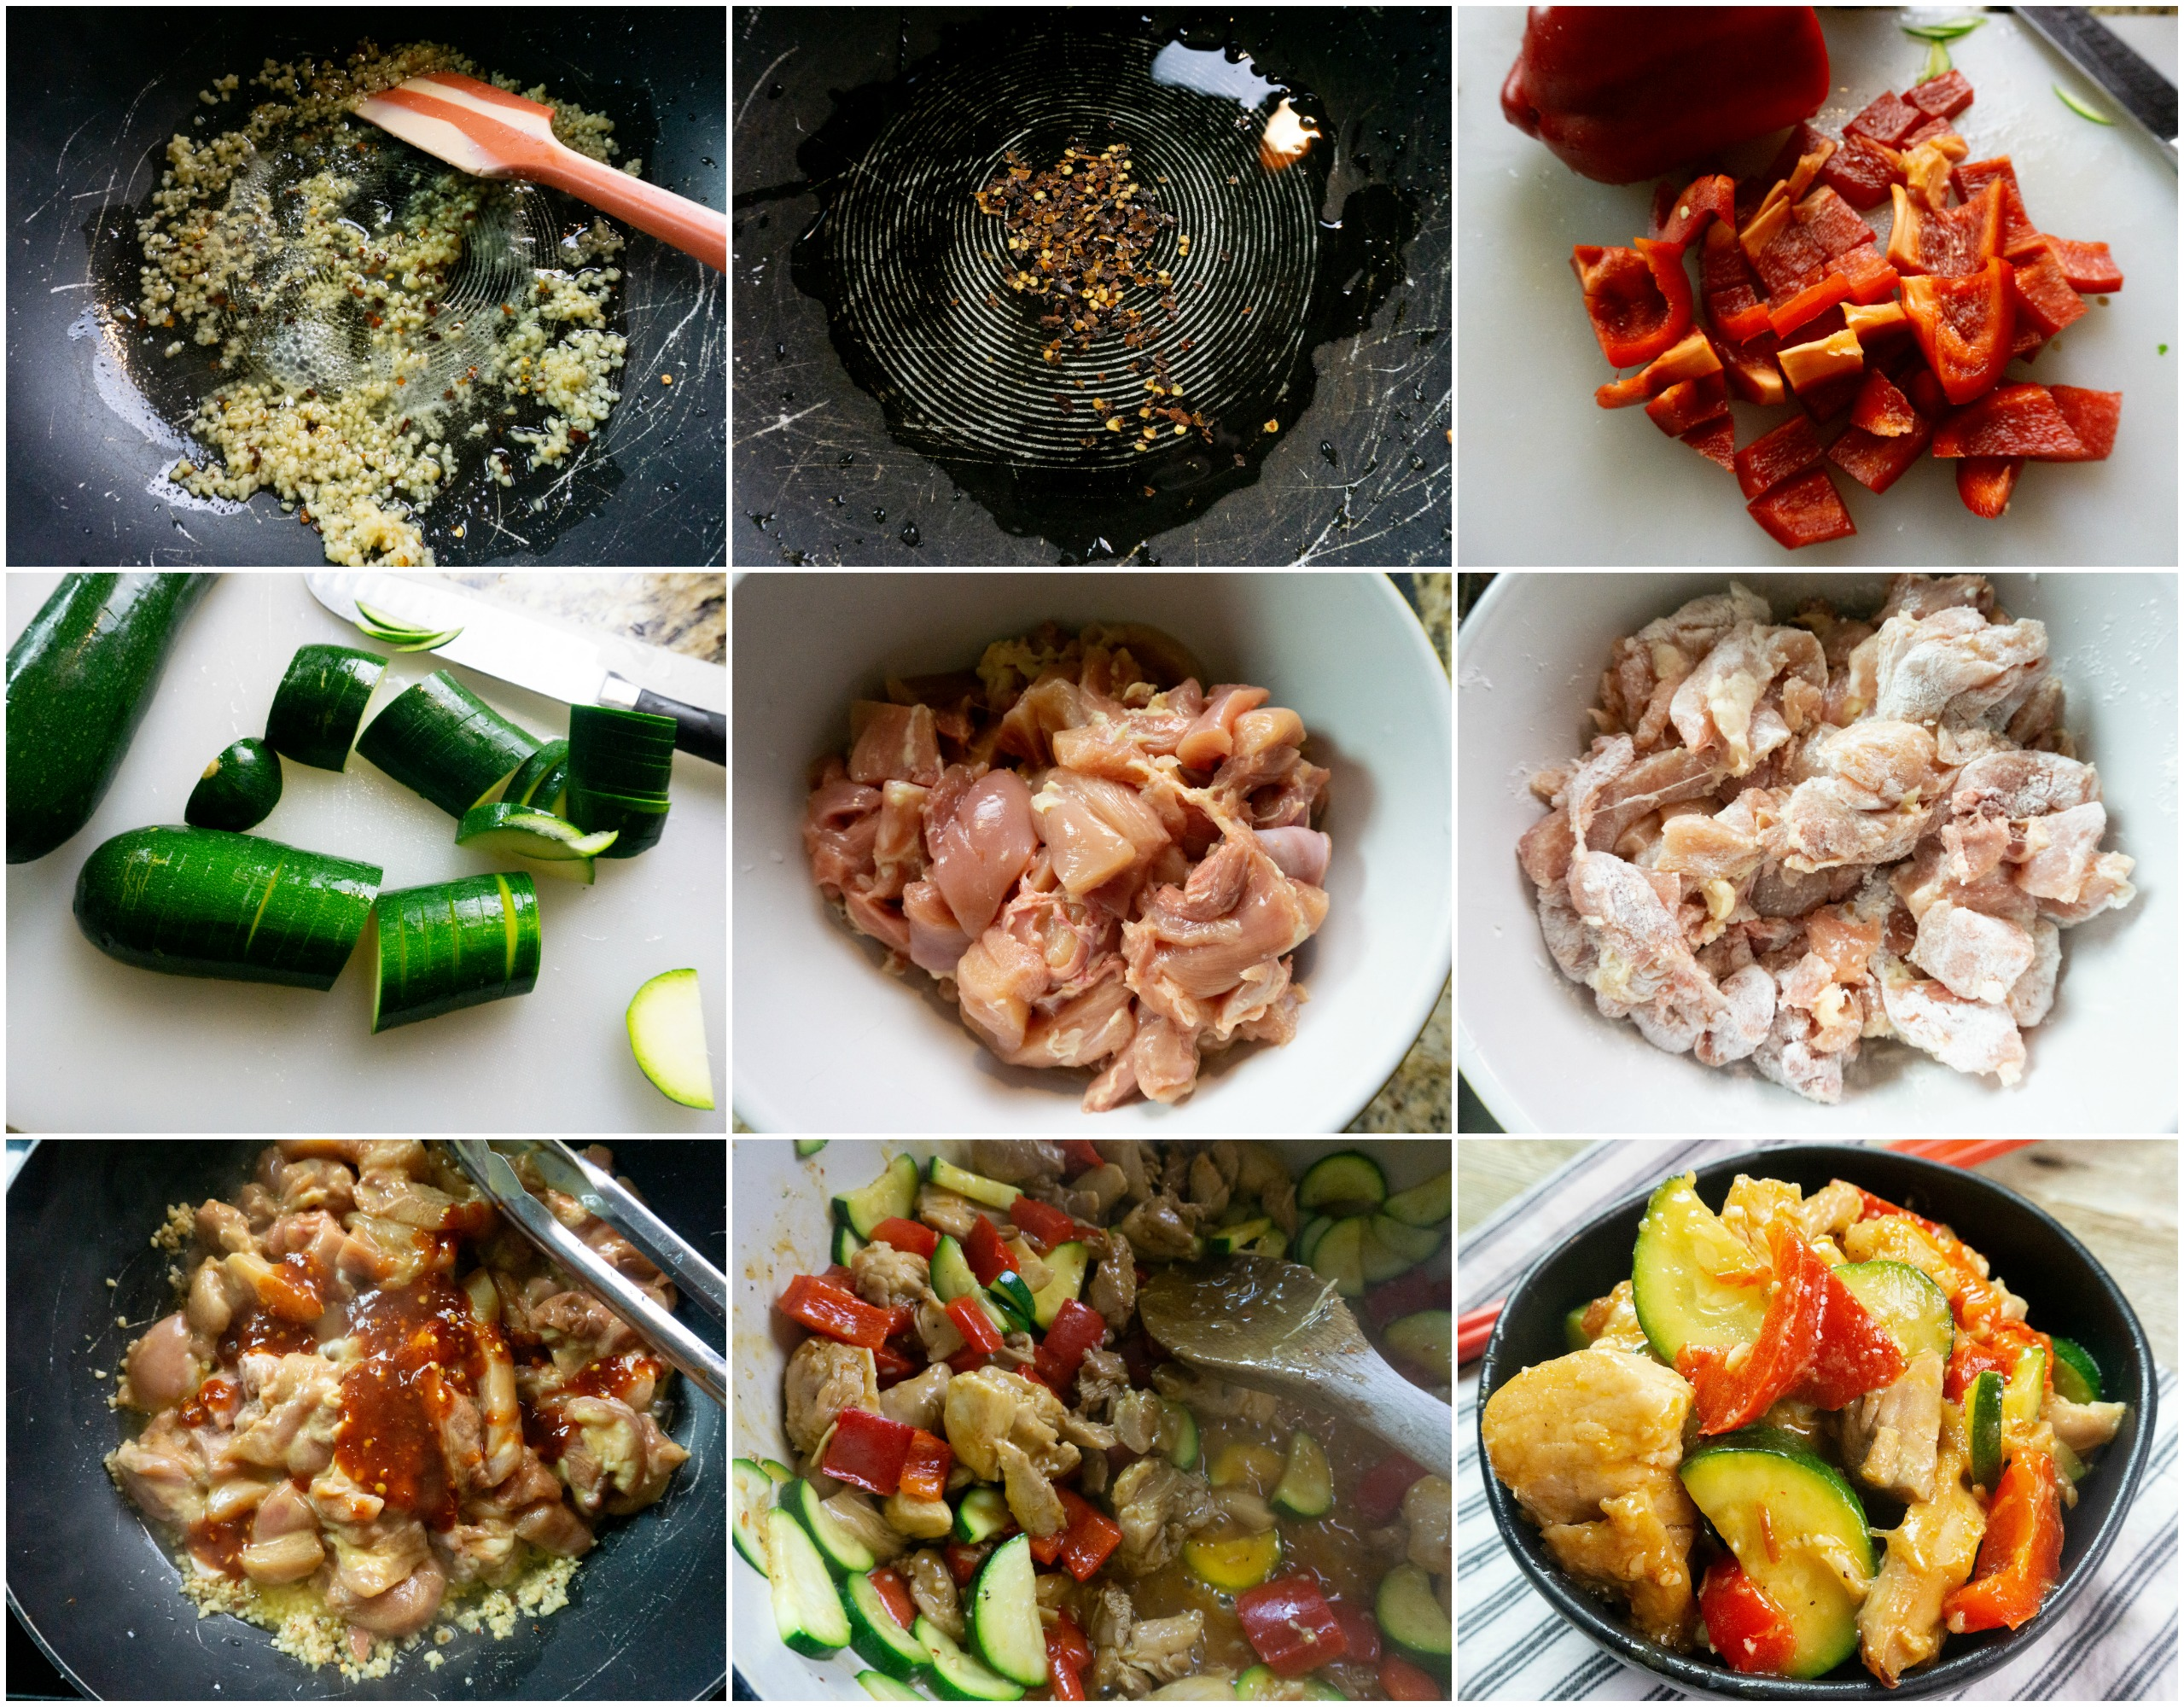 Kung Pao Chicken - Process Pictures